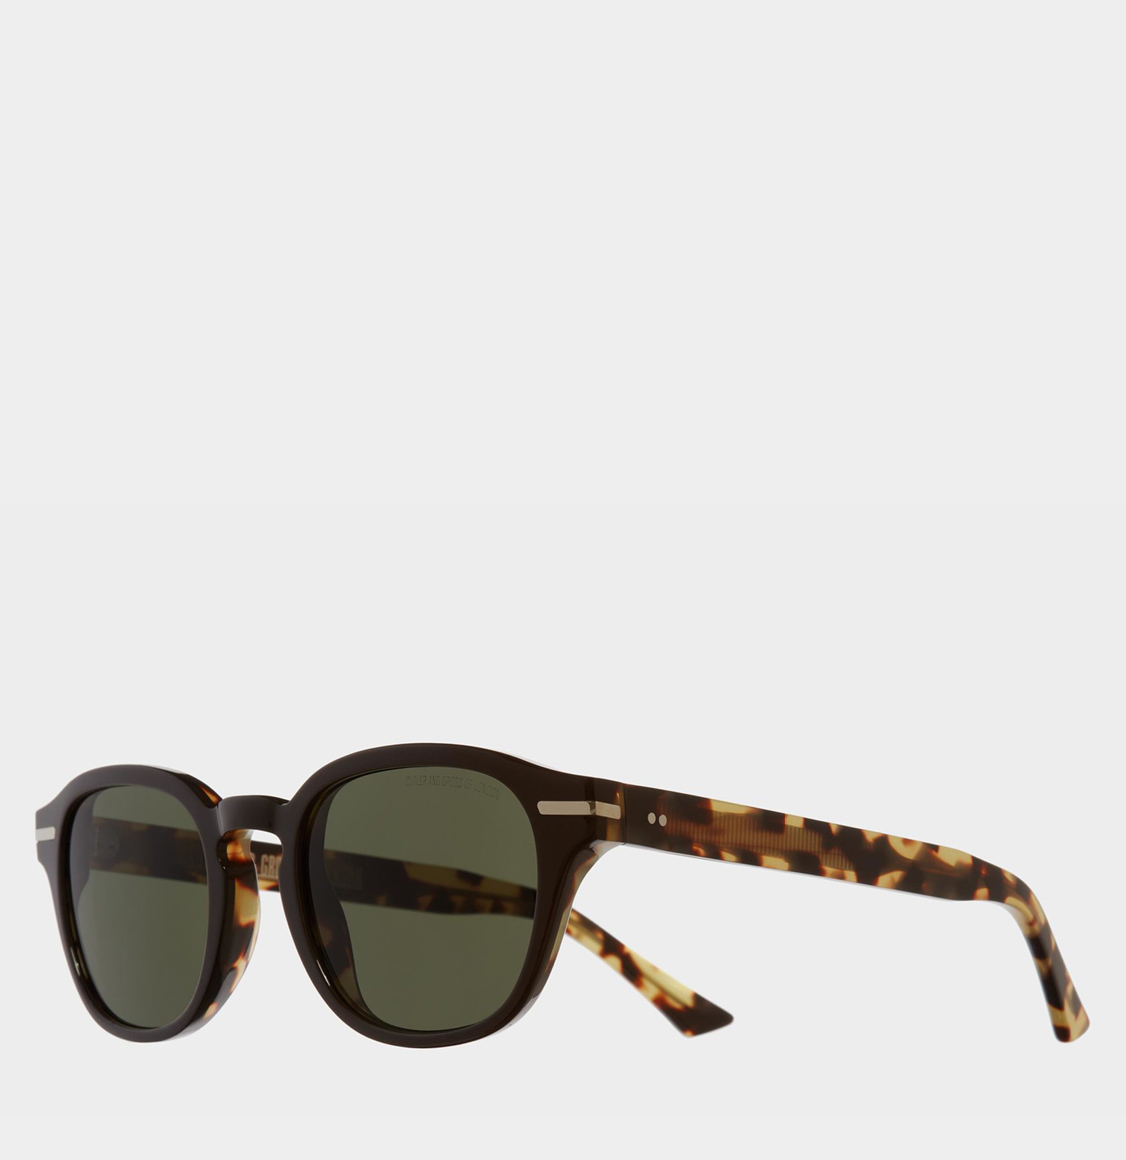 Cutler and Gross Round-Frame Black Taxi and Camo Acetate Γυαλιά Ηλίου